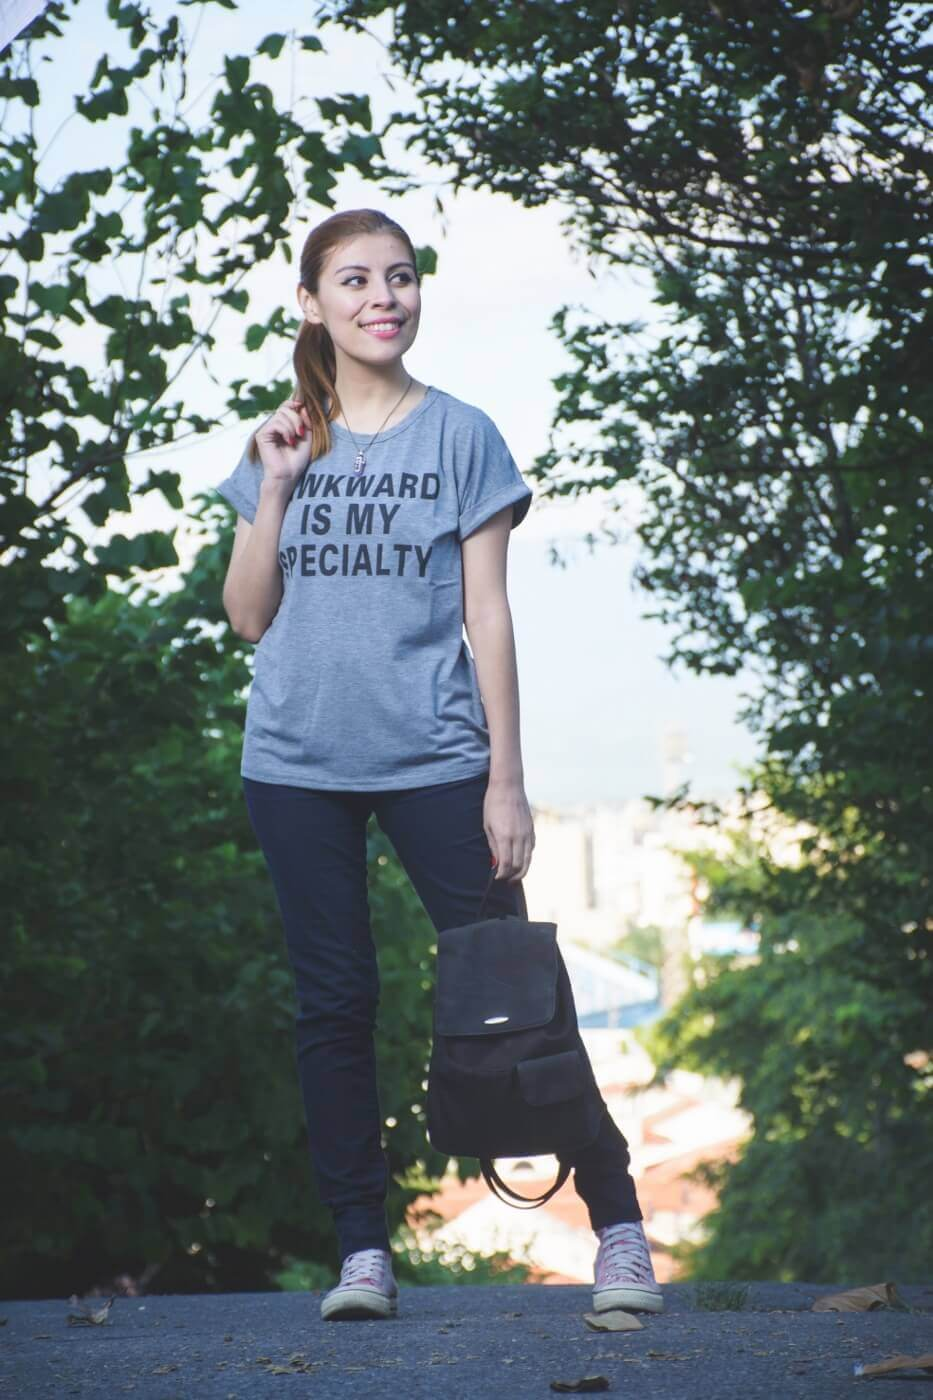 zaful graphic tshirt casual streetstyle summer 2017 trends style by deb06